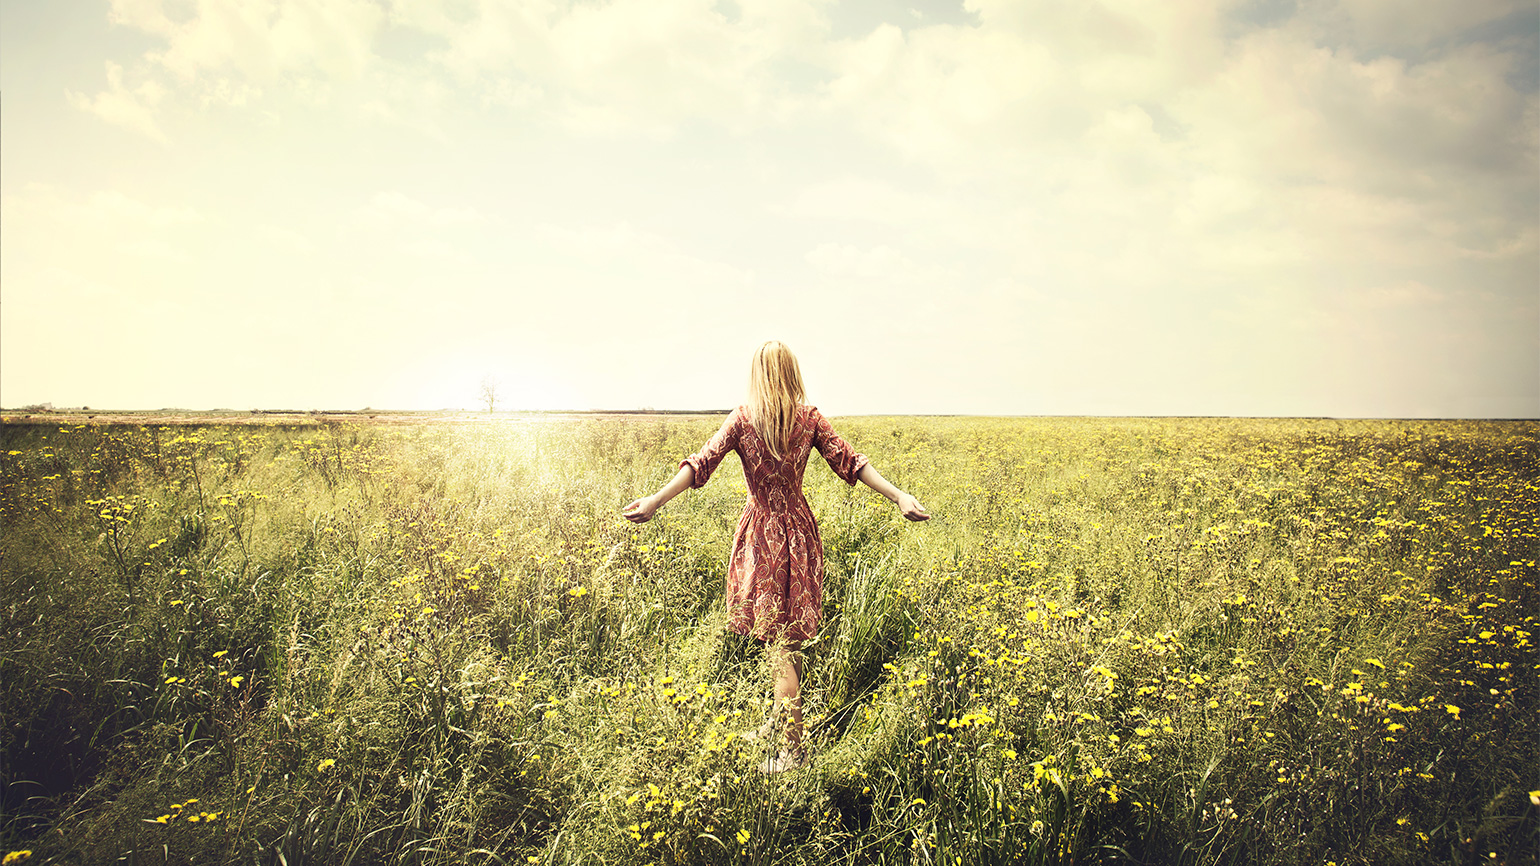 A woman in a sun-drenched field